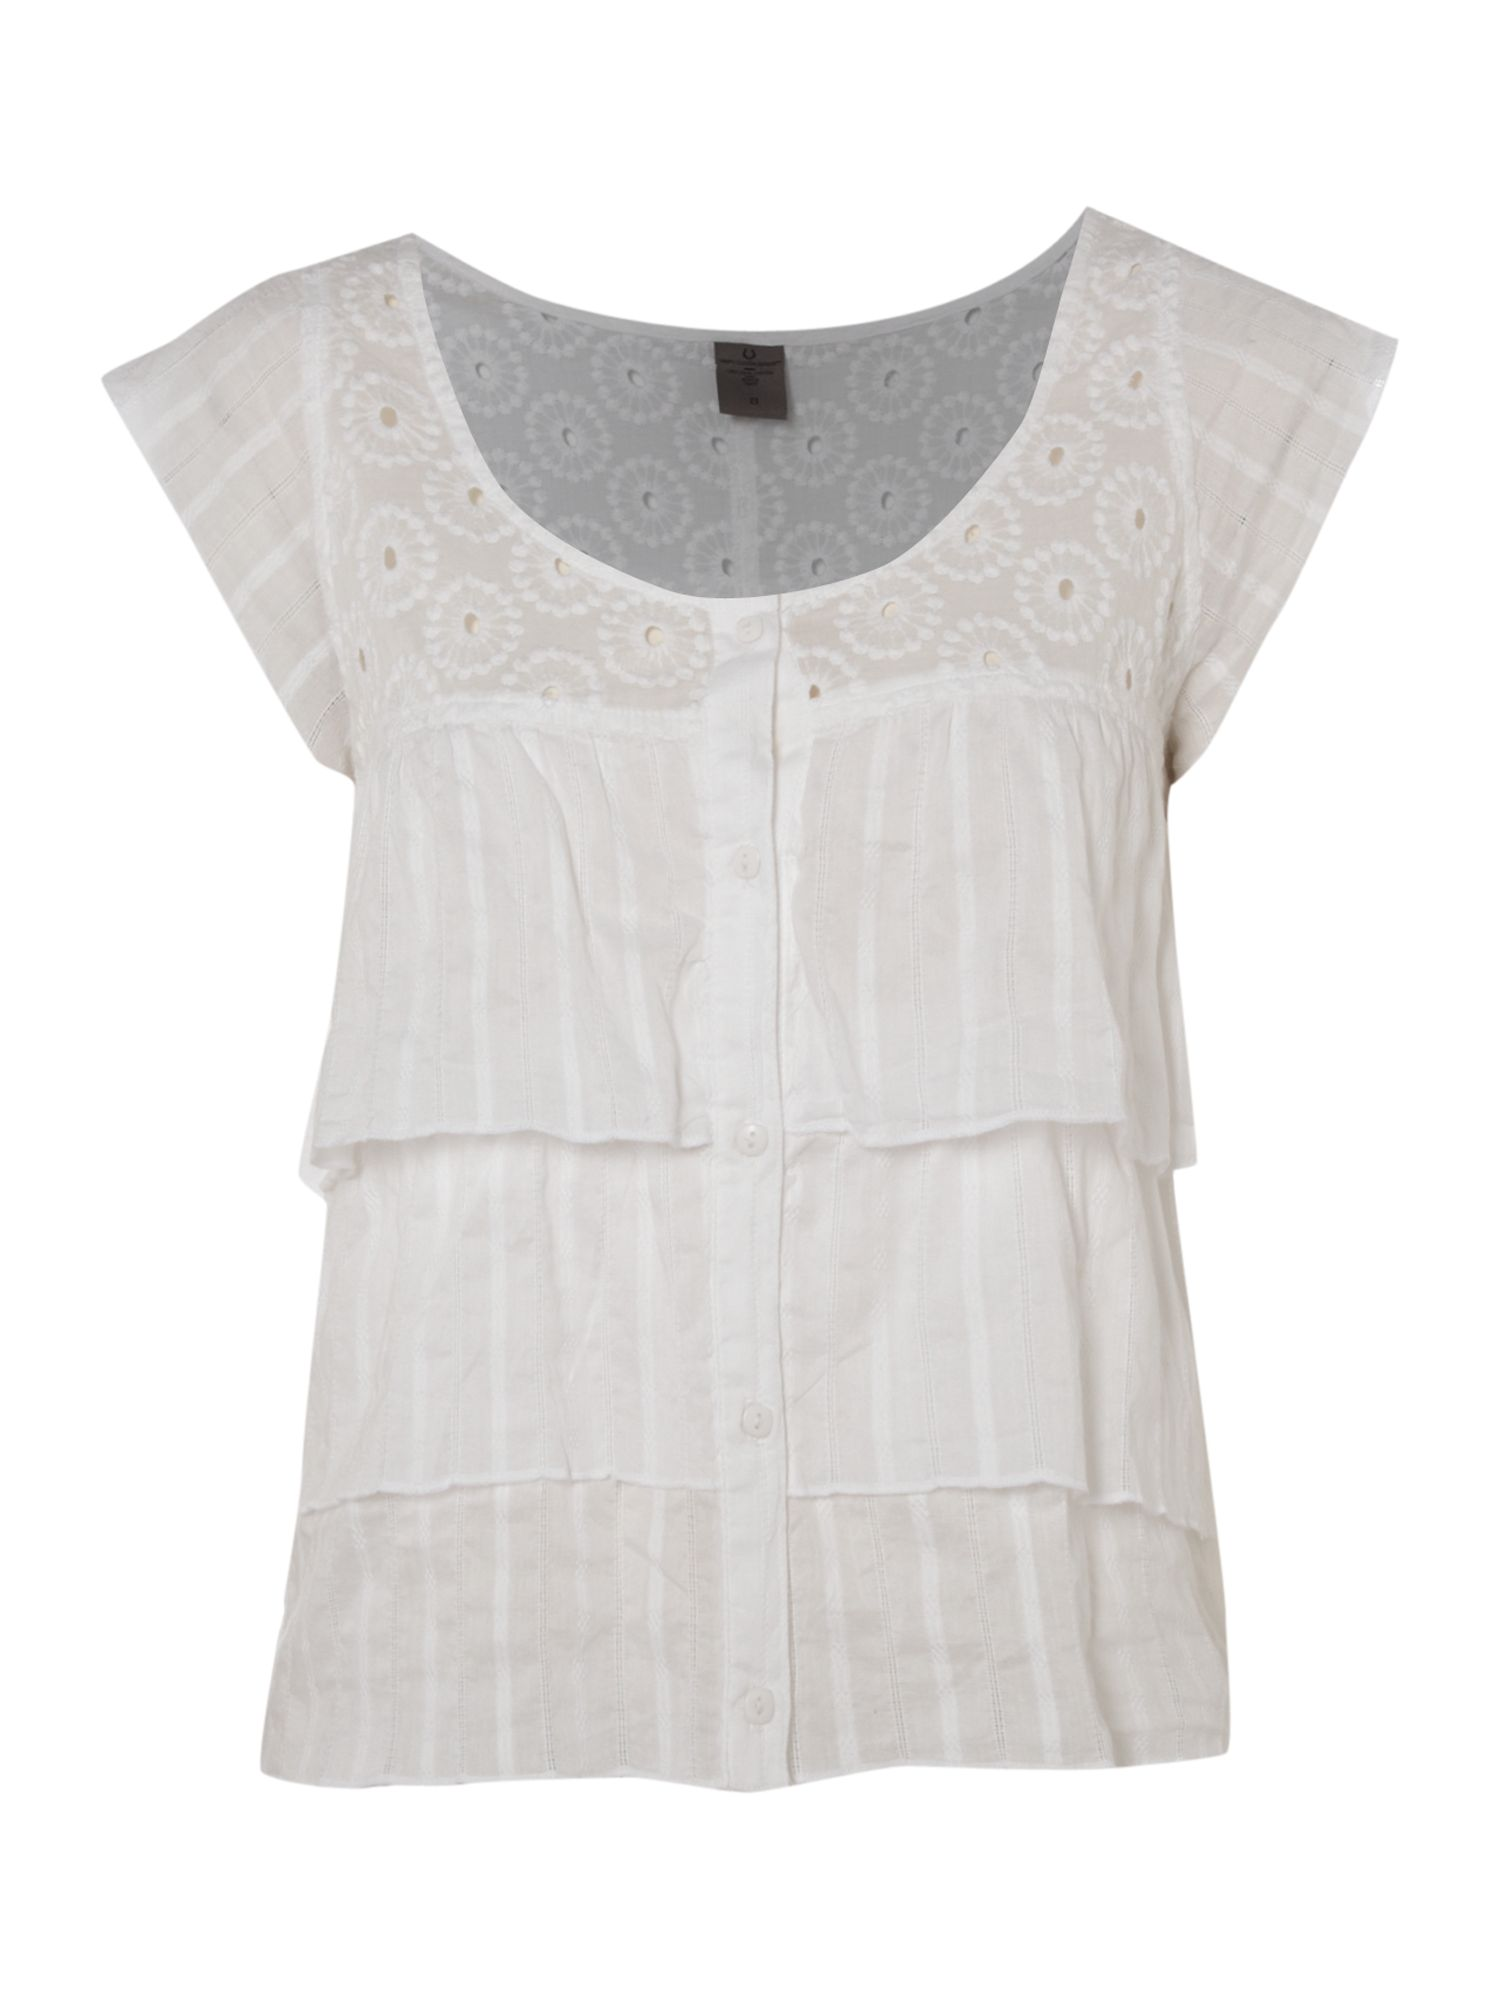 Vero Moda Lace frill short blouse - White product image